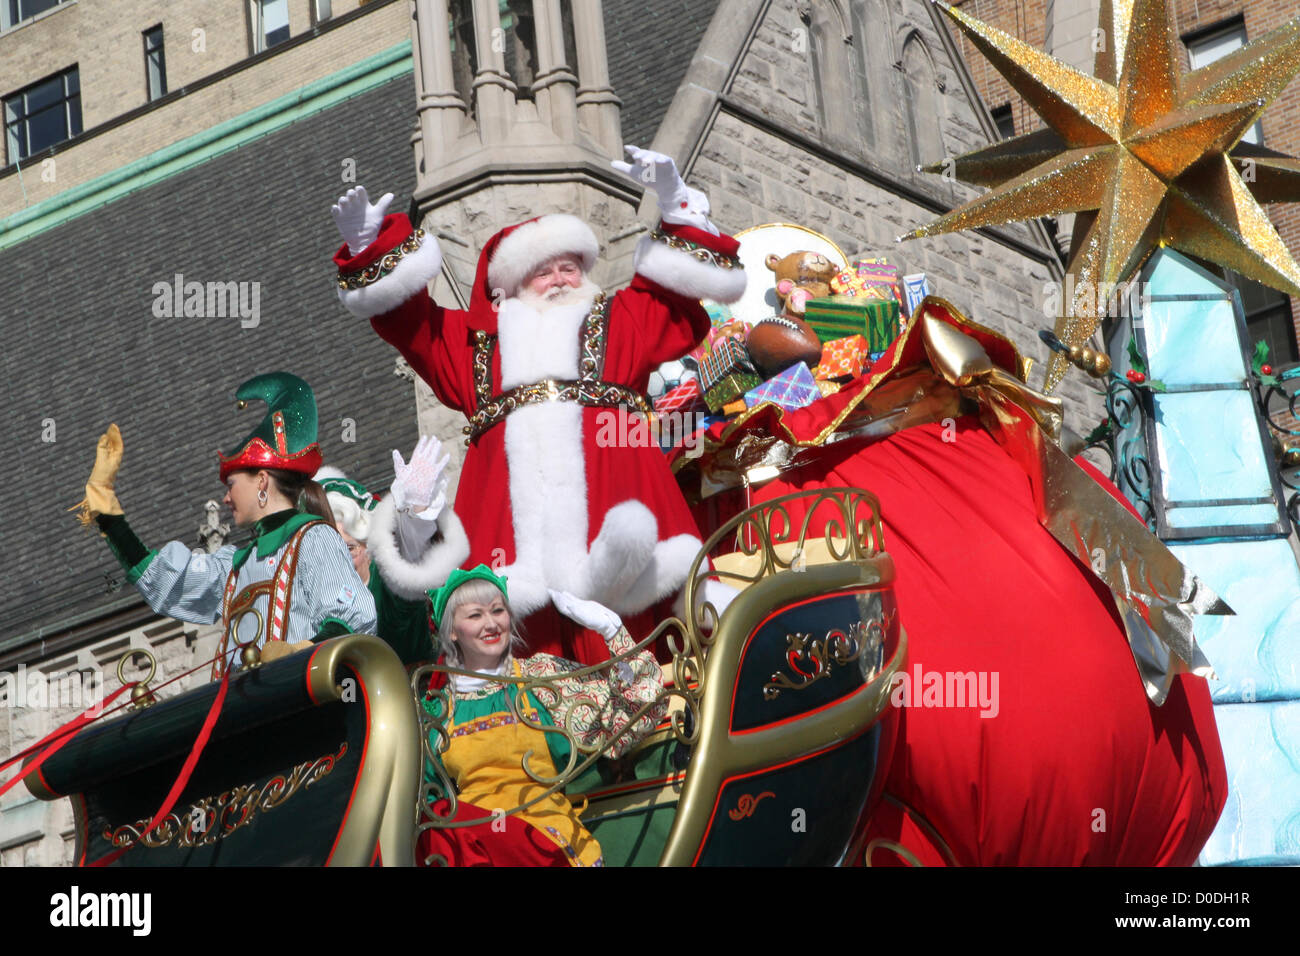 Santa Claus in Macy\u0027s Thanksgiving Day Parade in New York